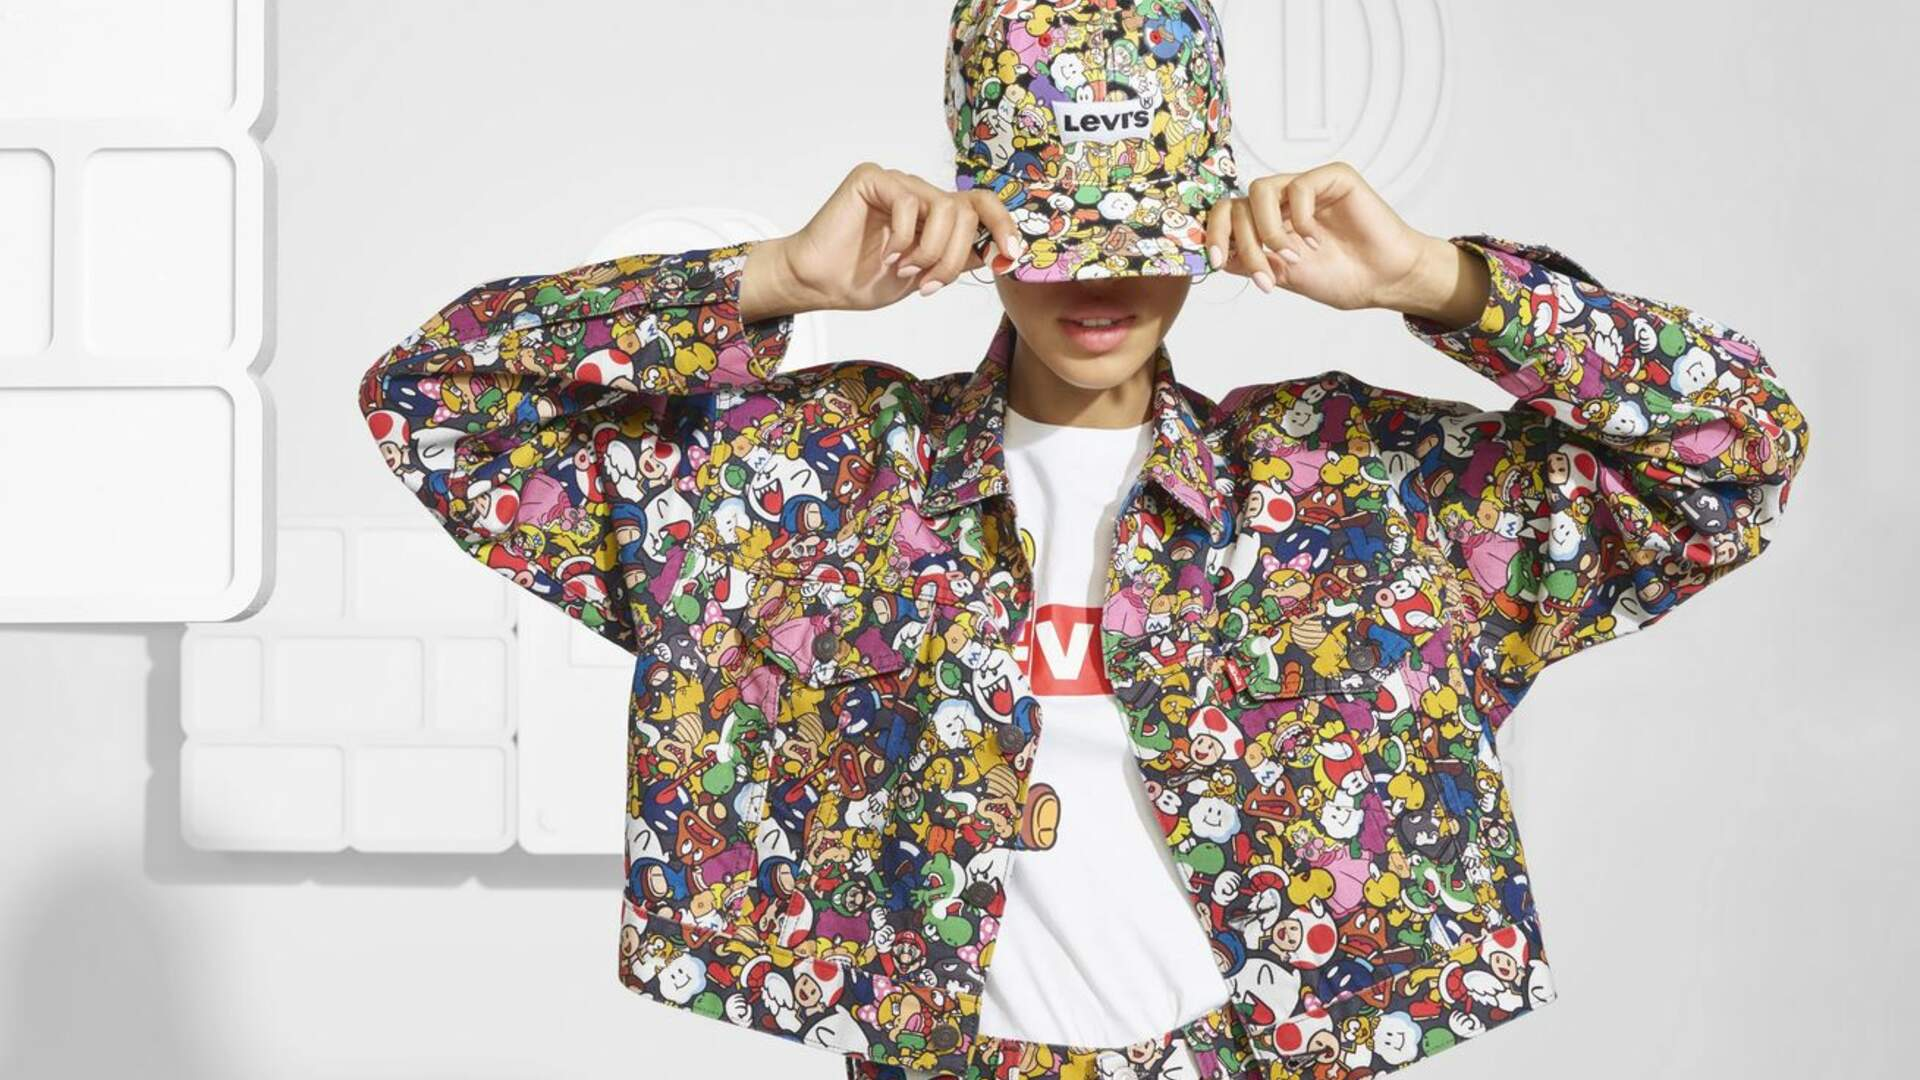 It Looks Like a Clown Threw up Trix Cereal on Levi's Super Mario Shirts and Jackets